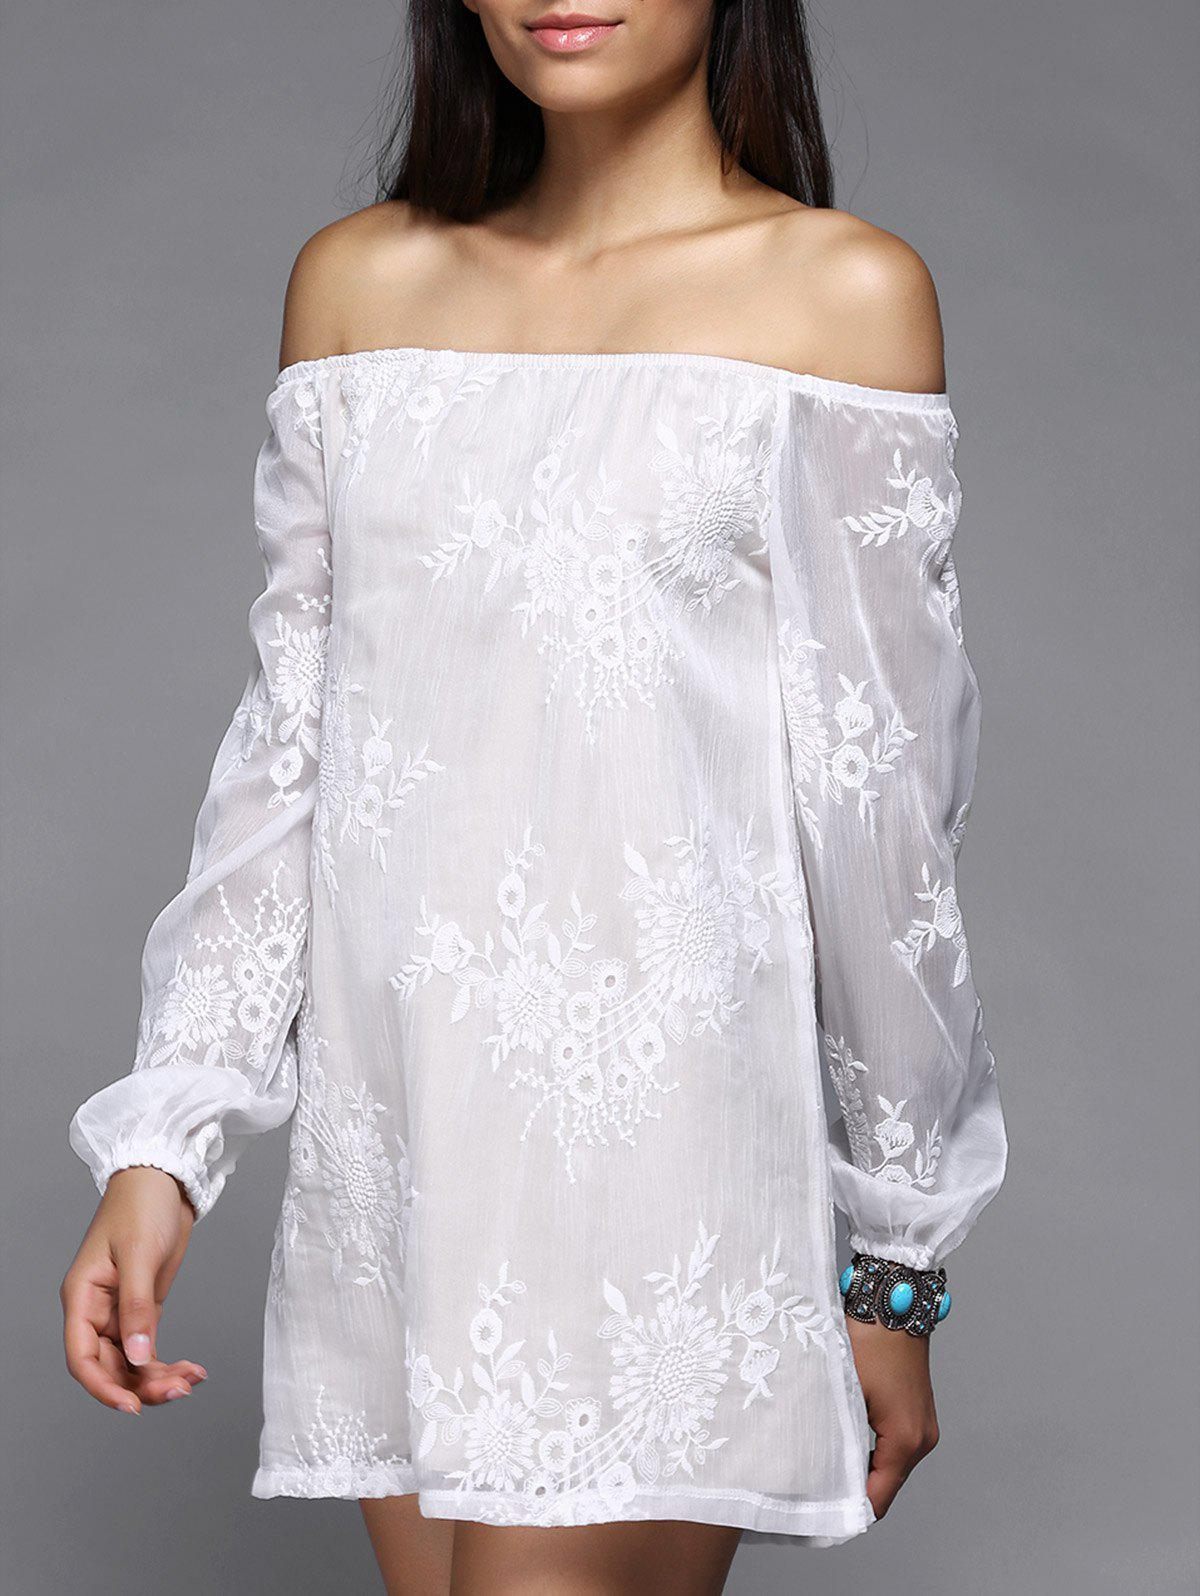 Off The Shoulder Puff Sleeve Embroidered Casual Wedding Dress - WHITE M